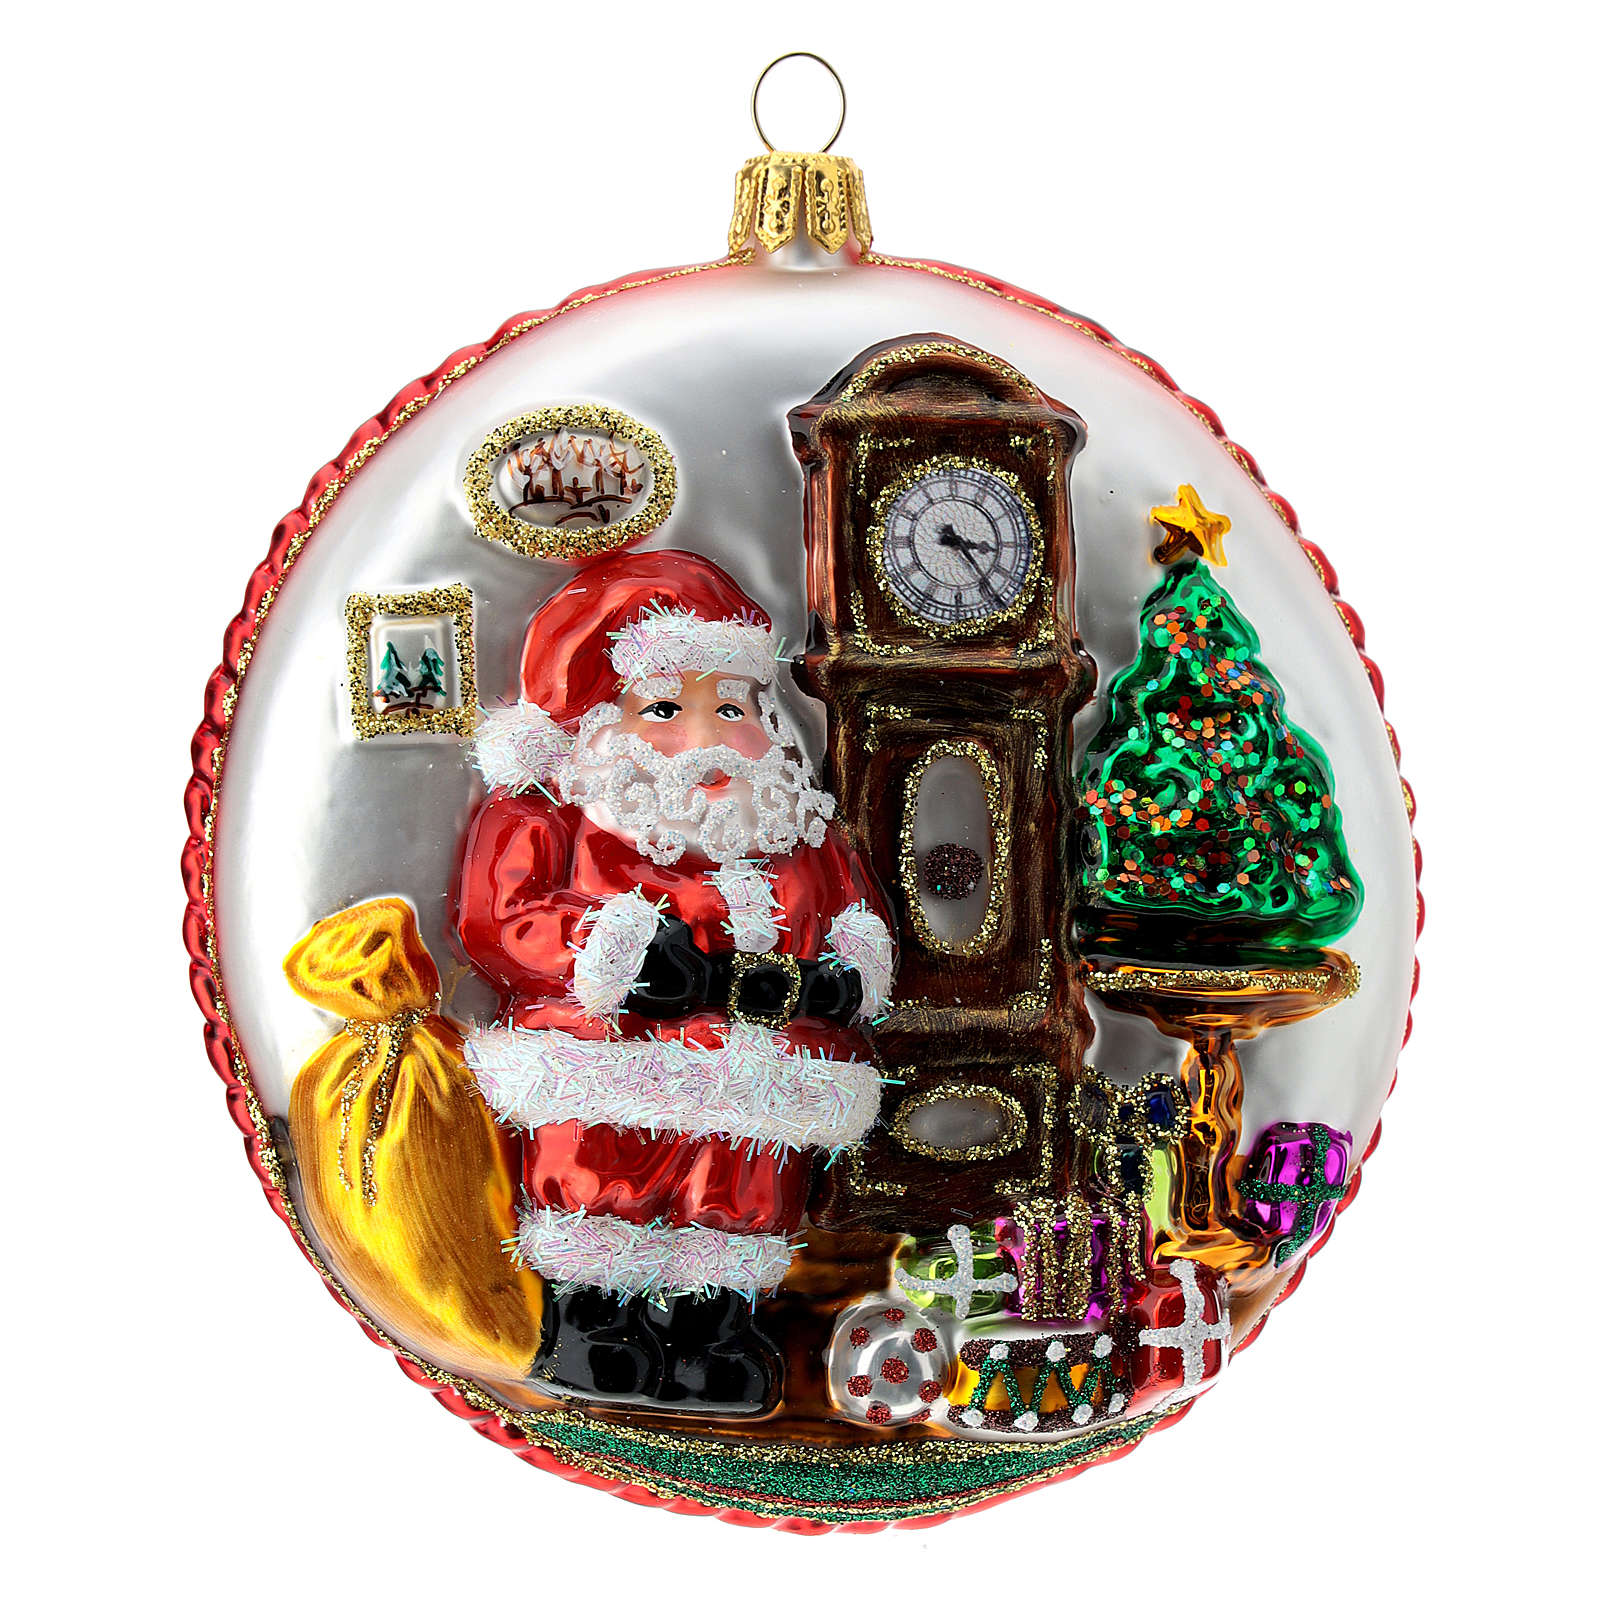 Blown glass Christmas ornament, Santa Claus disk with relief details 4